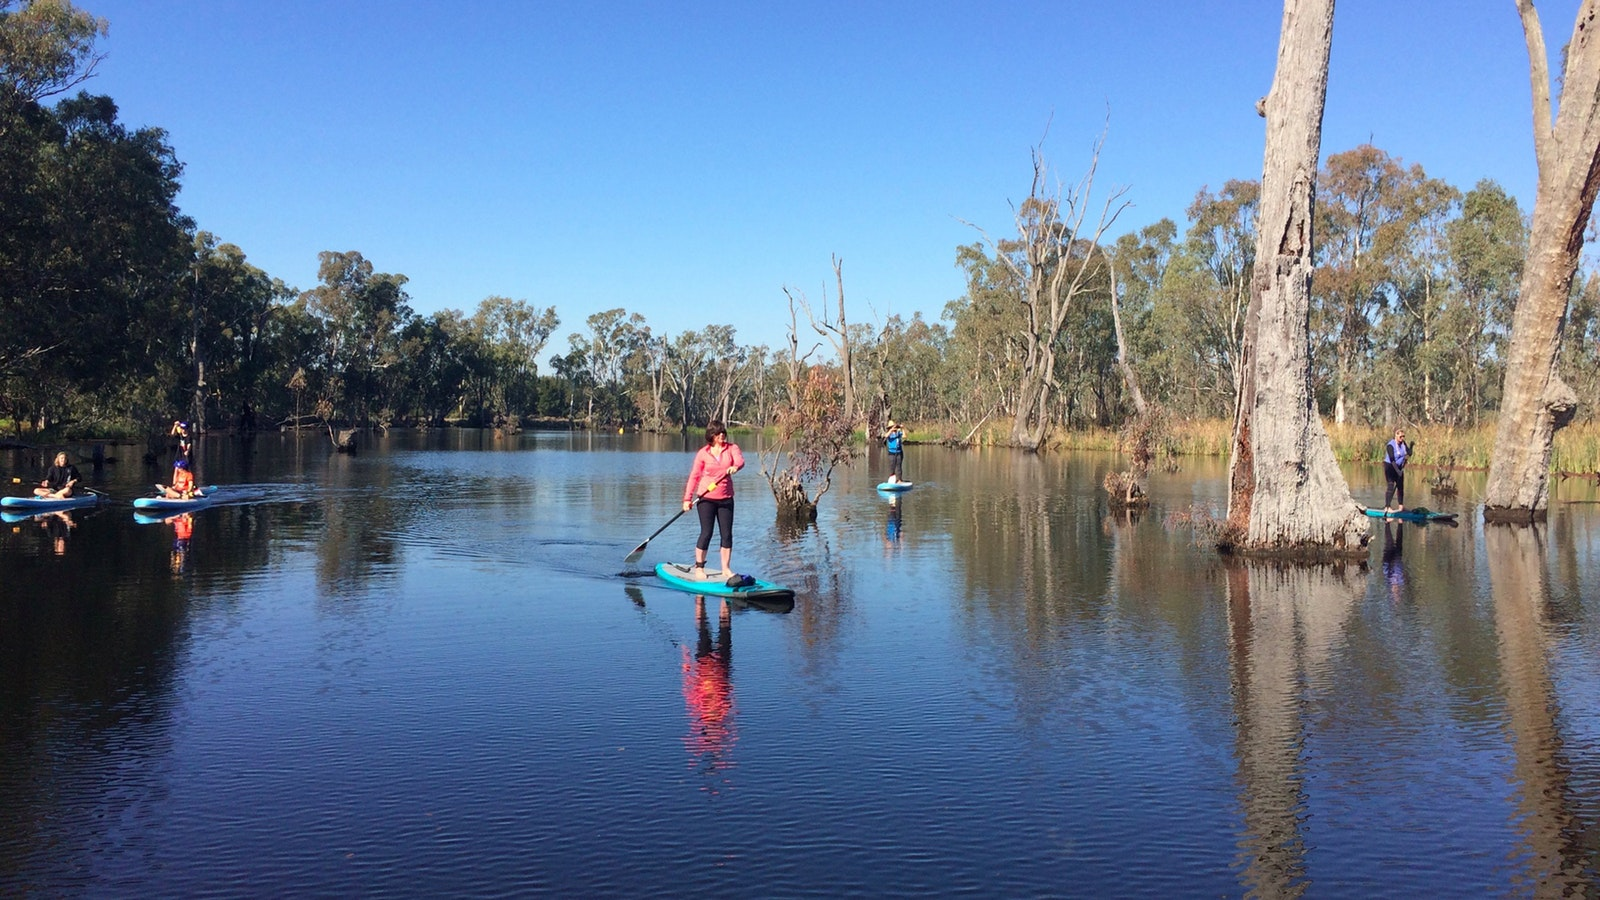 People paddling on wetlands, water is calm and the sky is blue